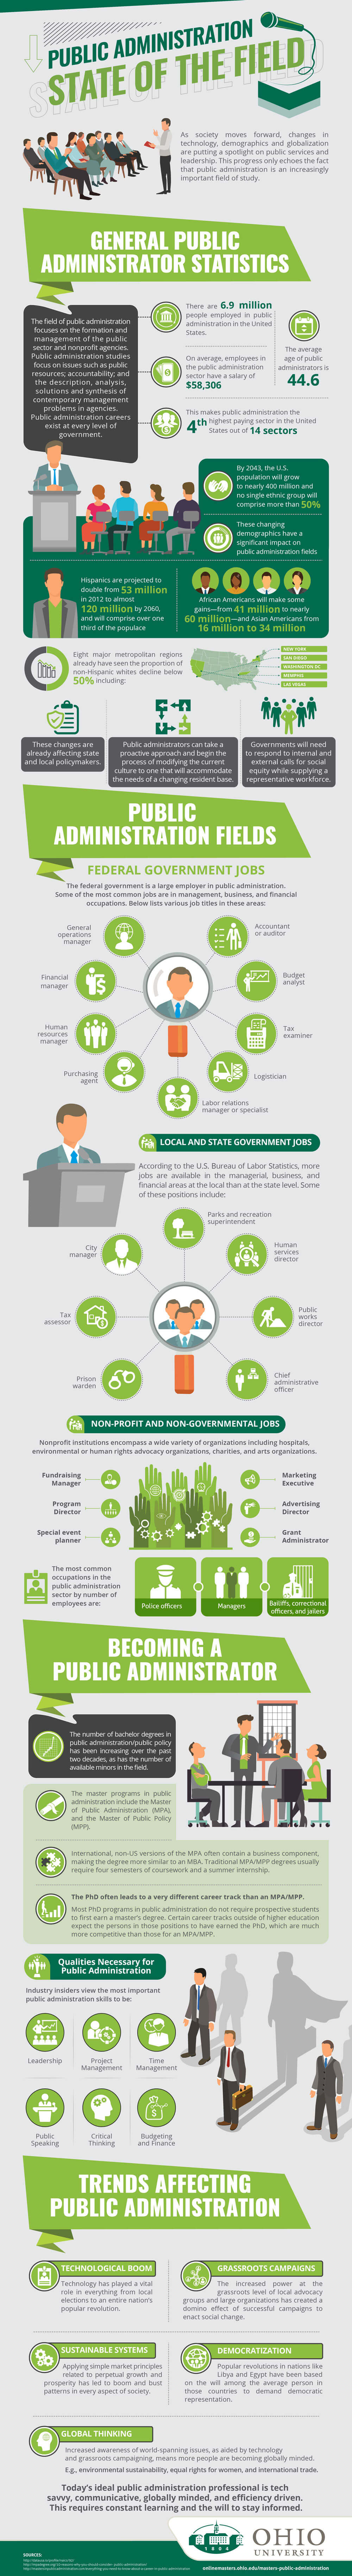 Public Administration: State of the Field infographic